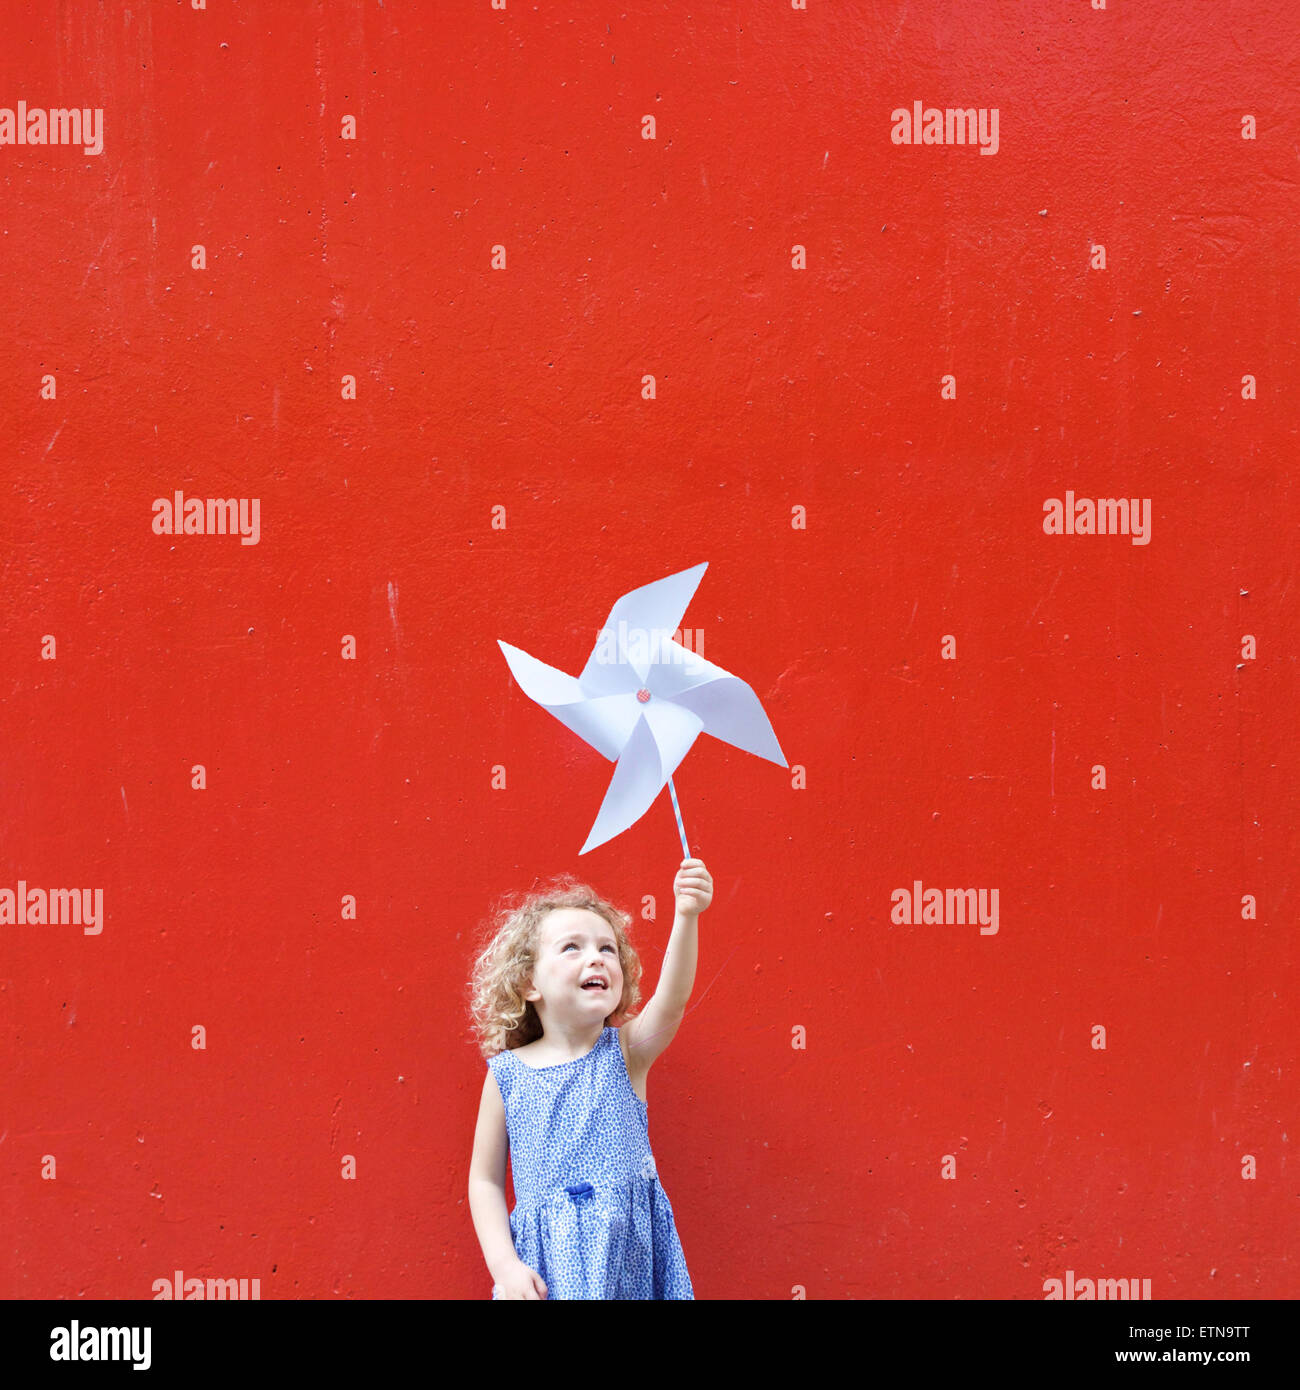 Smiling girl holding a pinwheel in the air making a Hong Kong flag - Stock Image